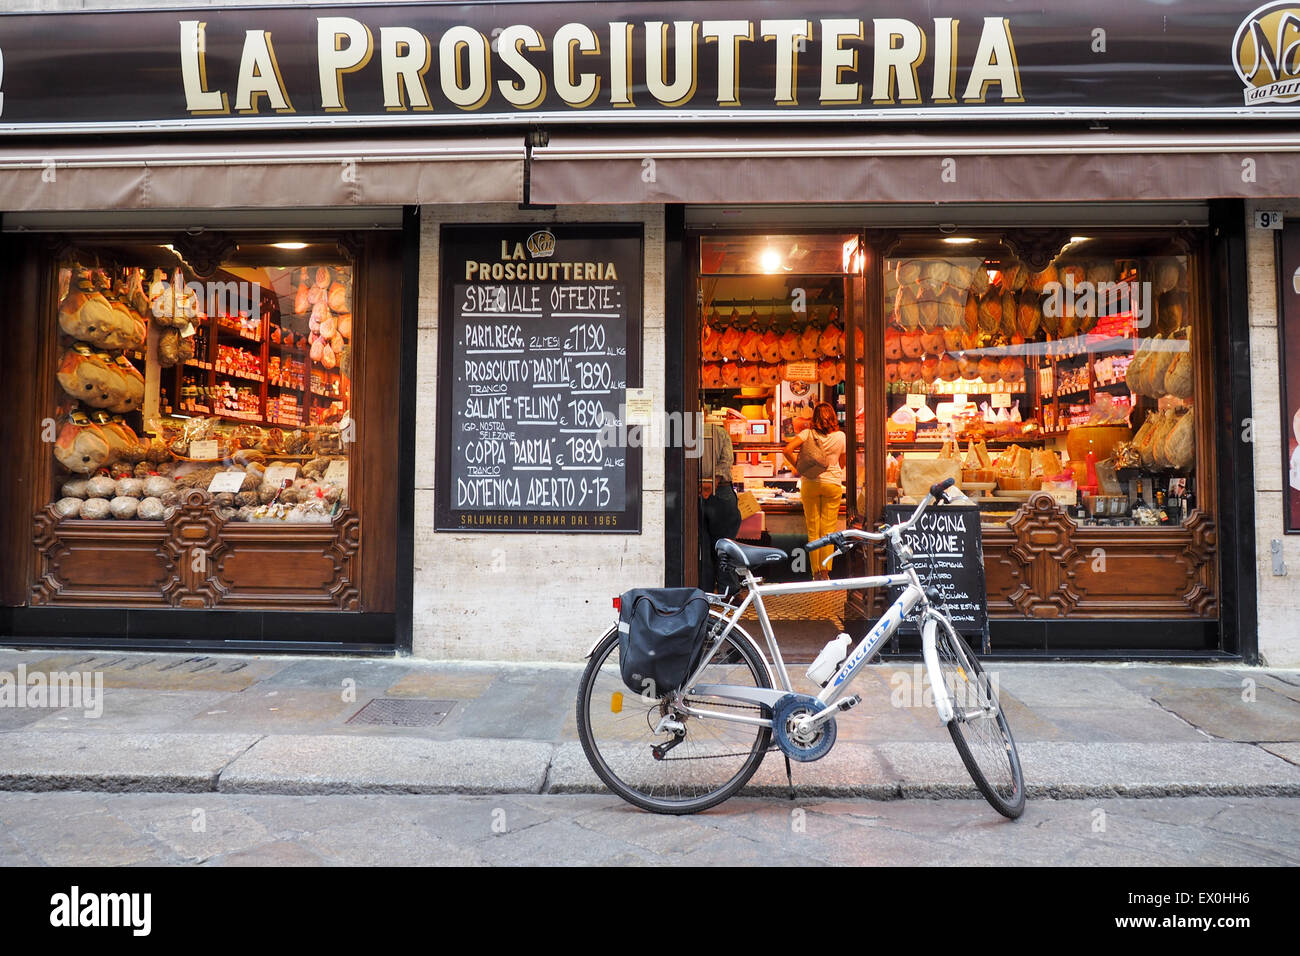 A bicycle parked outside a prosciutteria store, where Parma ham can be bought. - Stock Image